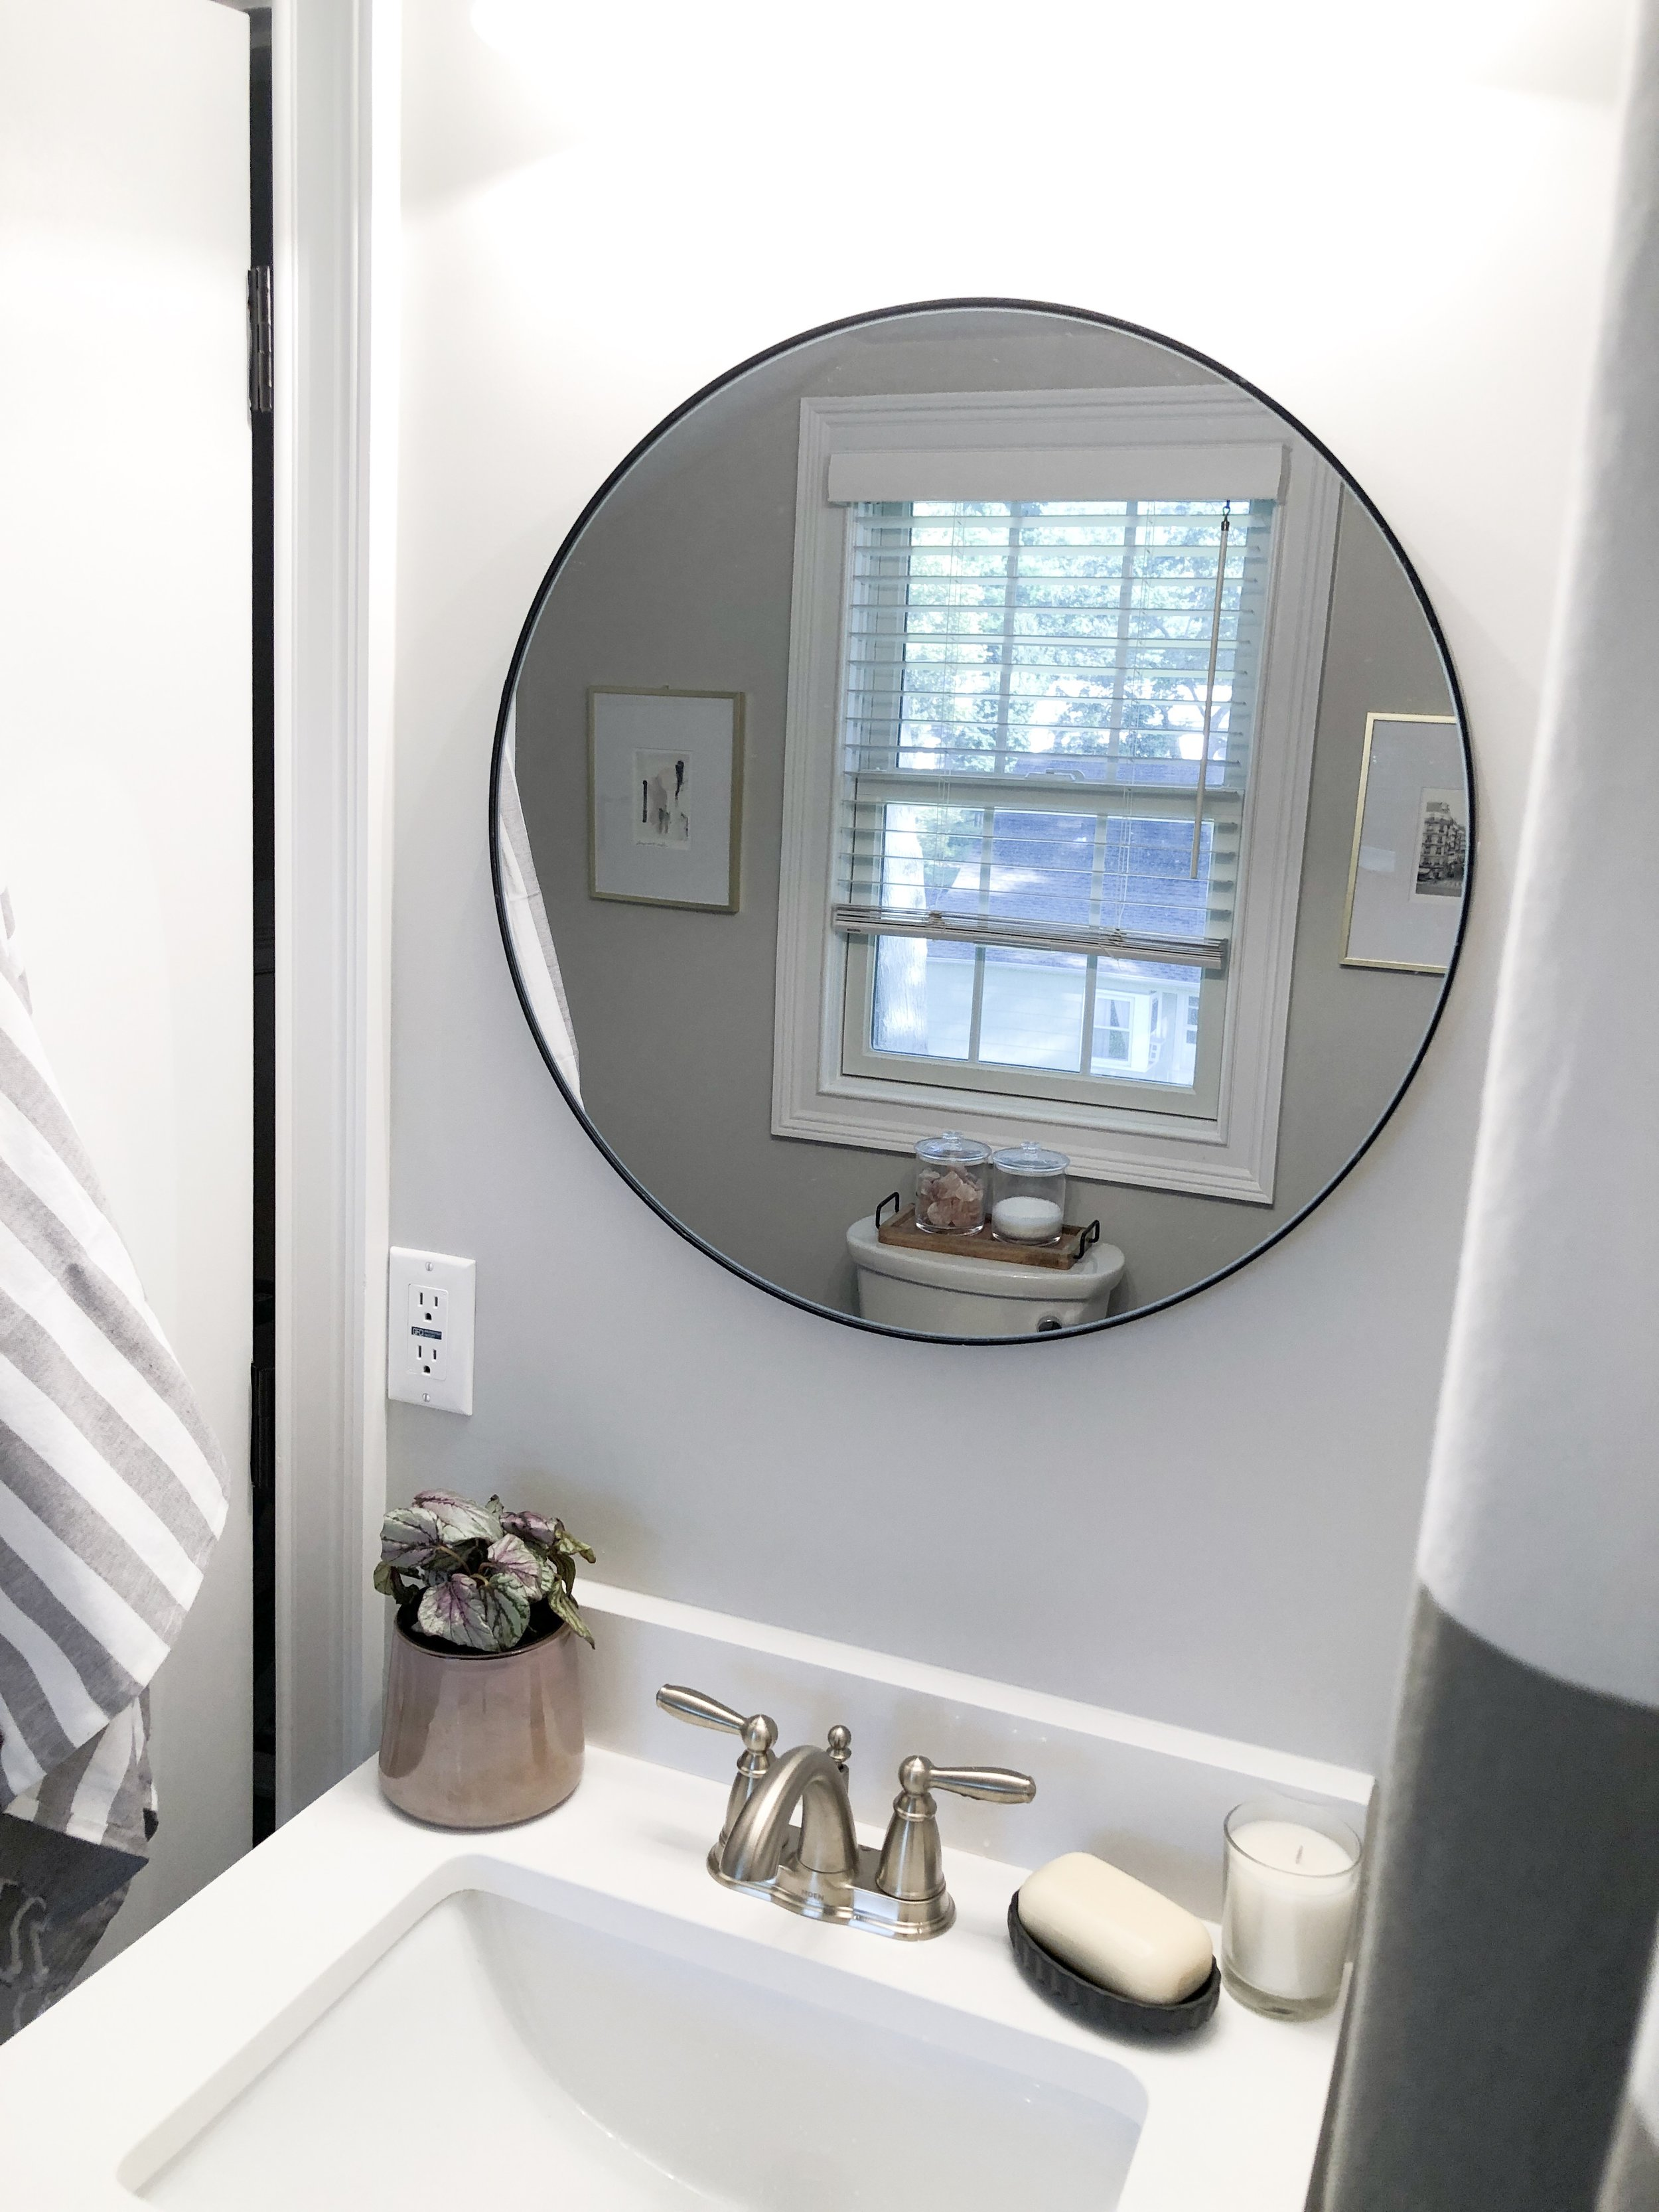 Loving this round mirror I found! It's the perfect size for our small vanity up here.